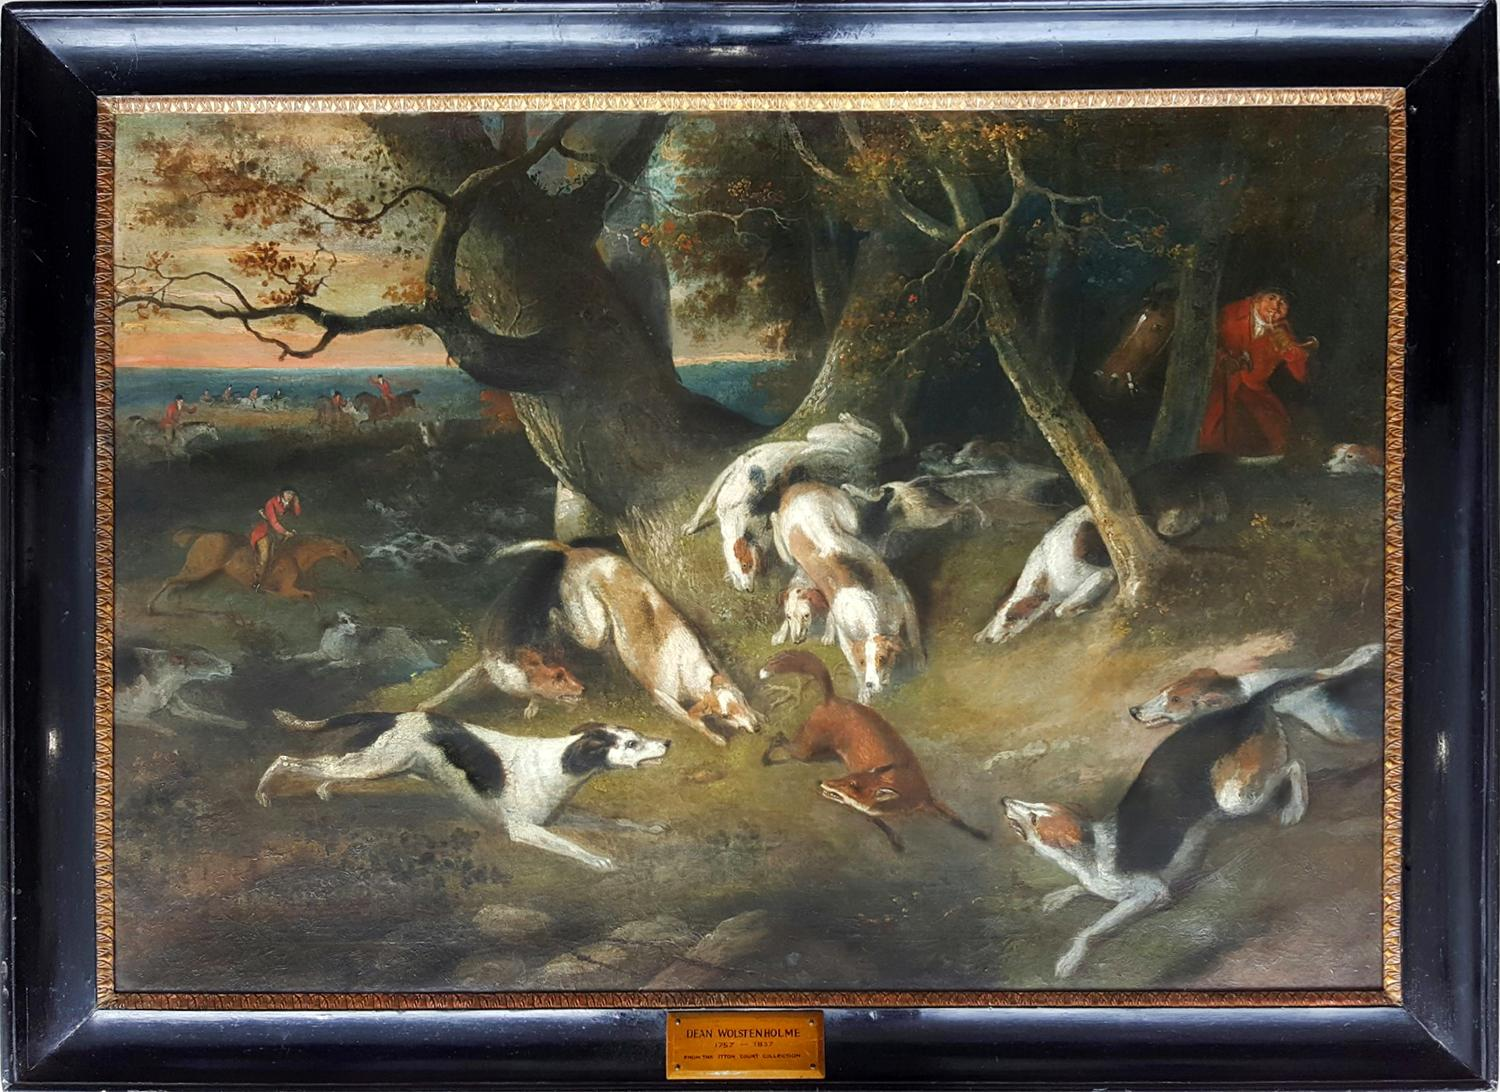 Hunting Scene with dogs attacking a fox - Sporting Art